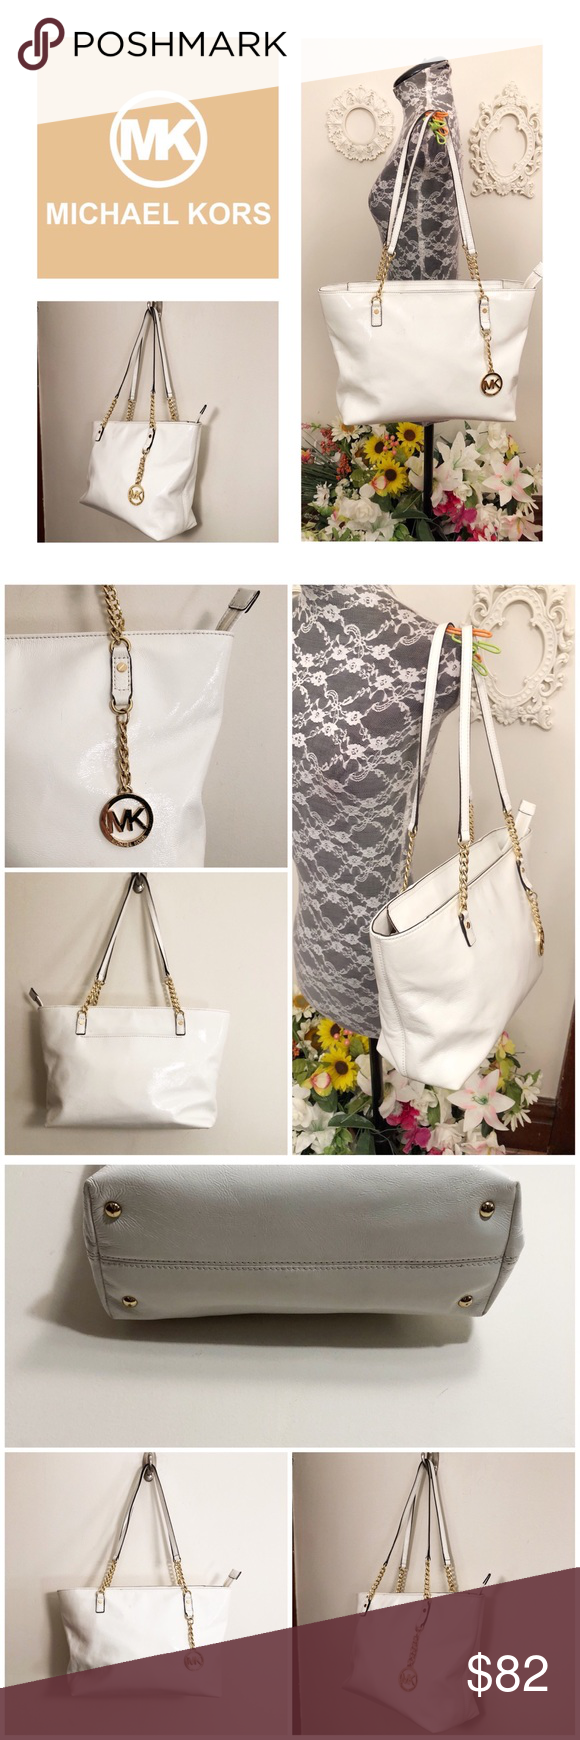 896f606f8df3 Auth Michael Kors White Patent Leather Purse Authentic Michael Kors White  Patent Leather Purse With Gold Chain Decal. Gorgeous! Only used a few  times, ...